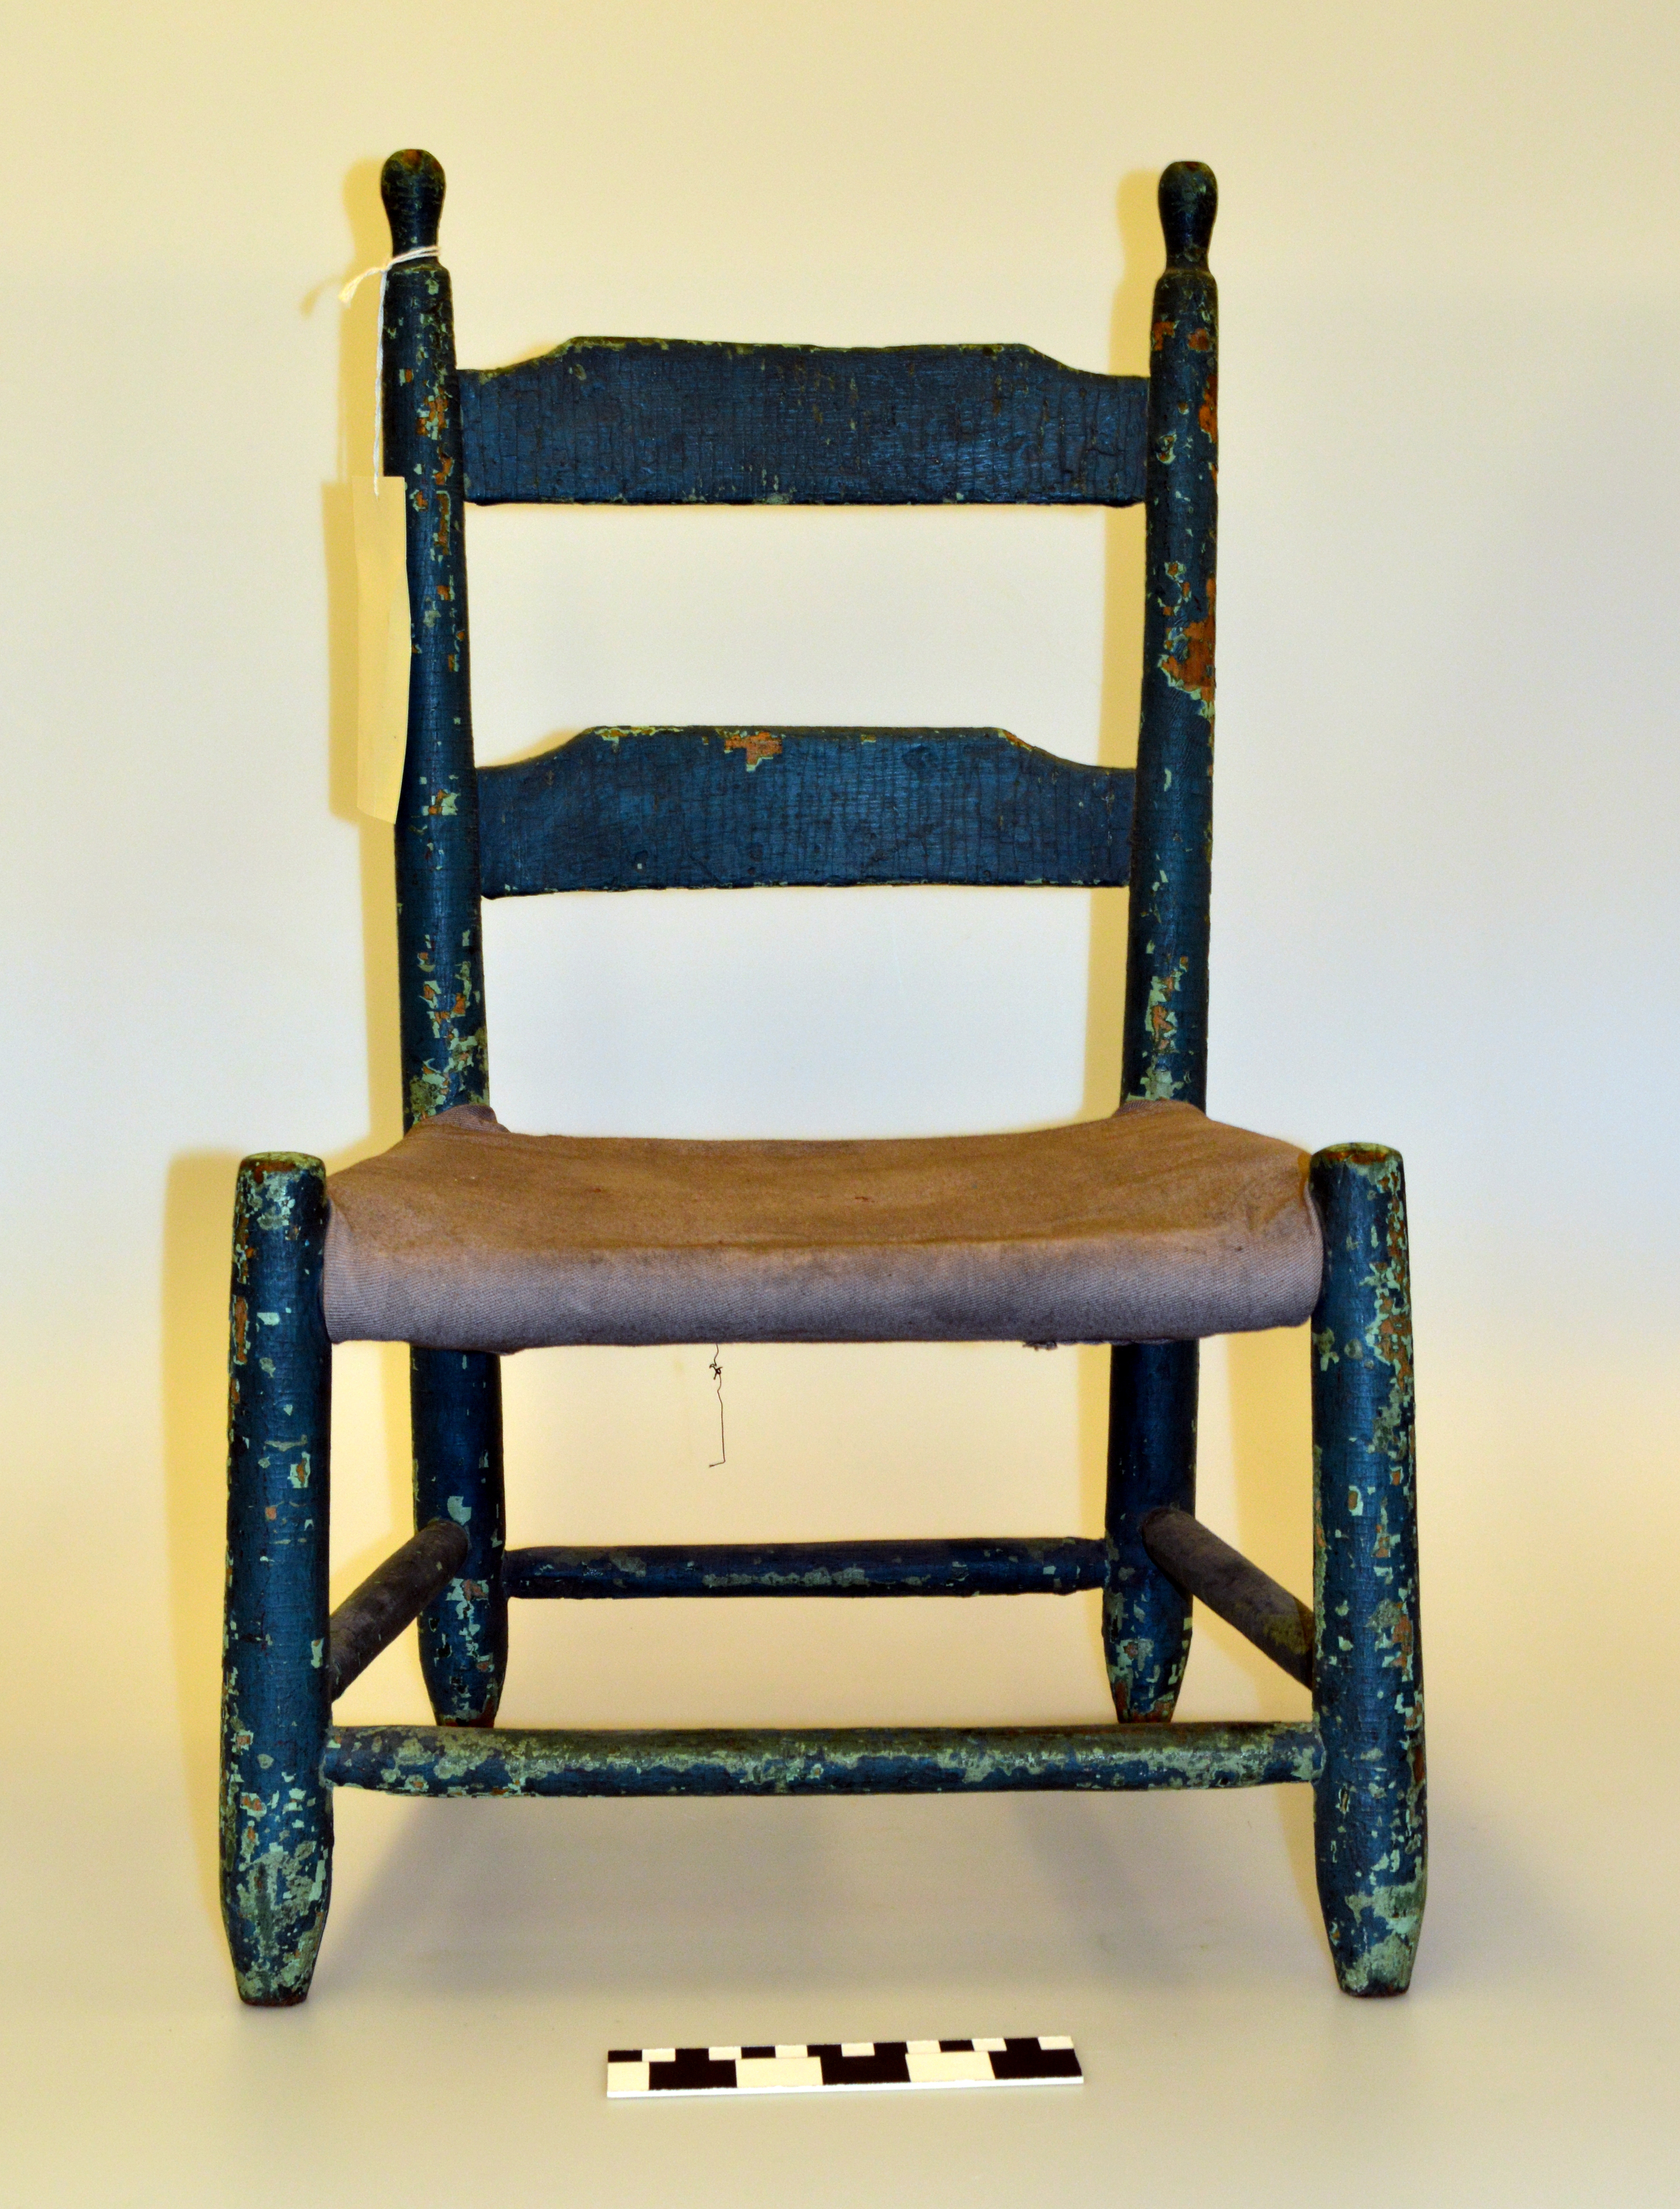 File:Teal Green Painted Wooden Childu0027s Chair